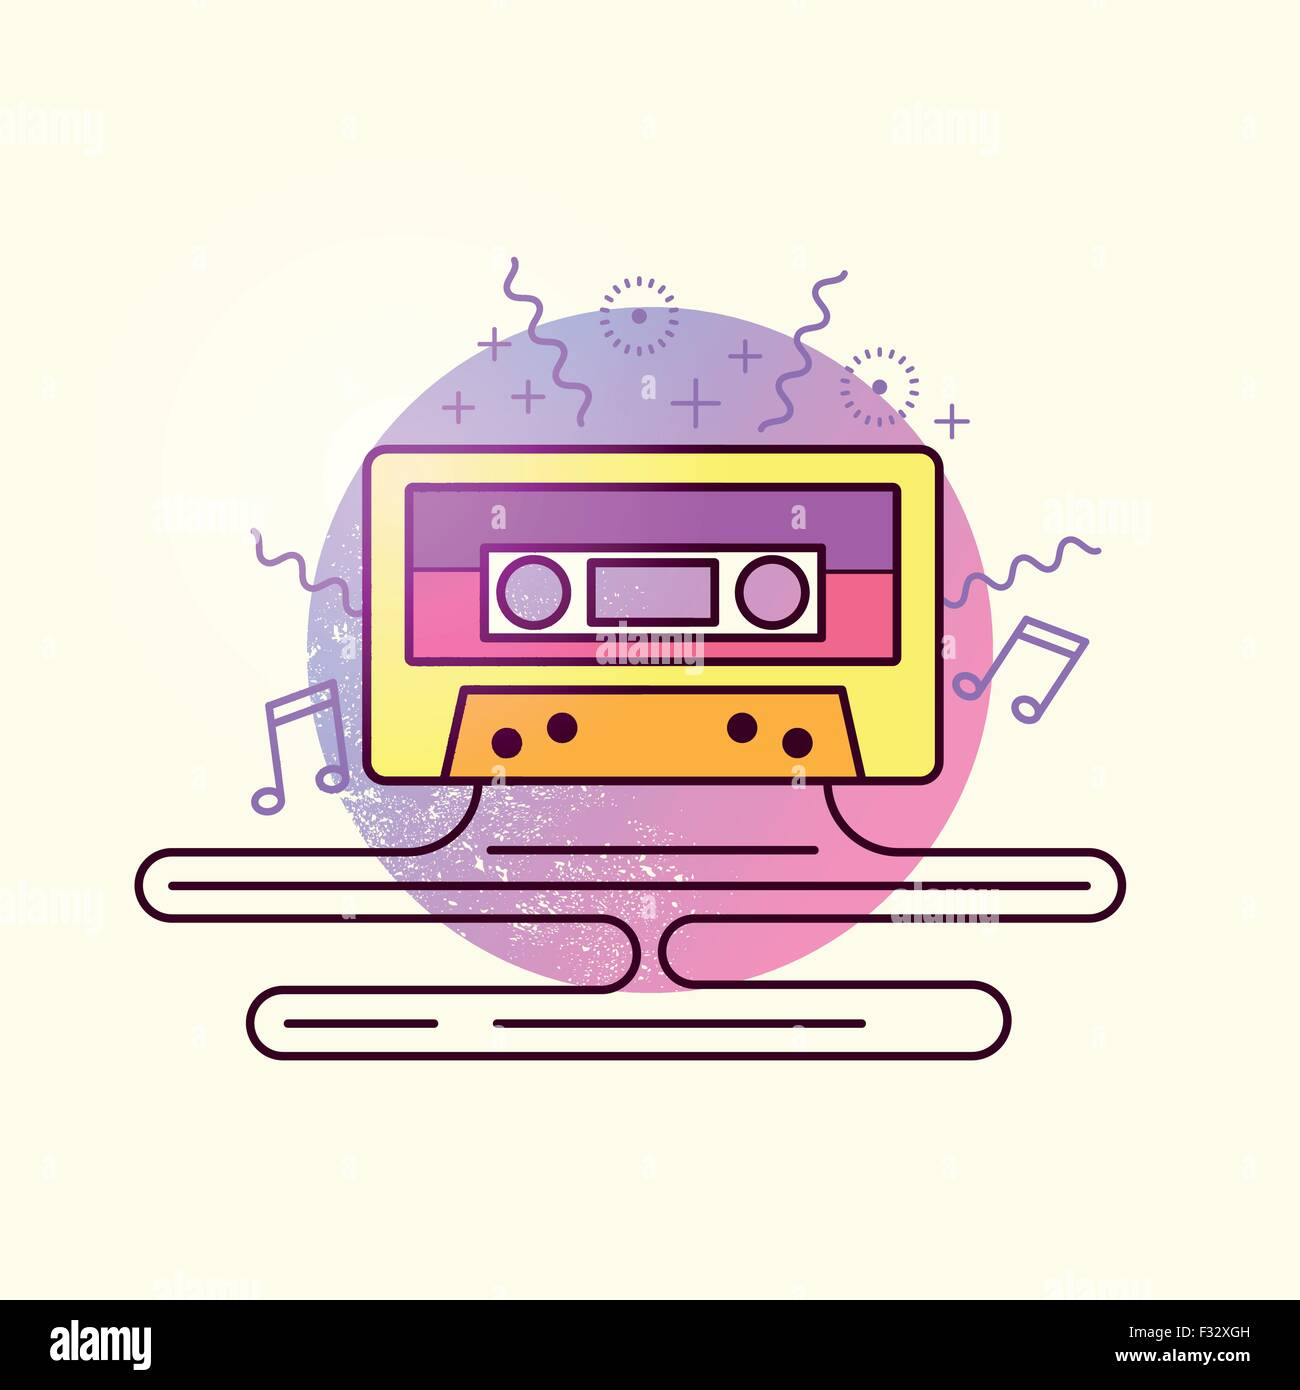 Audio Tape Cassette Vector. Retro mix tape, vector illustration. - Stock Image